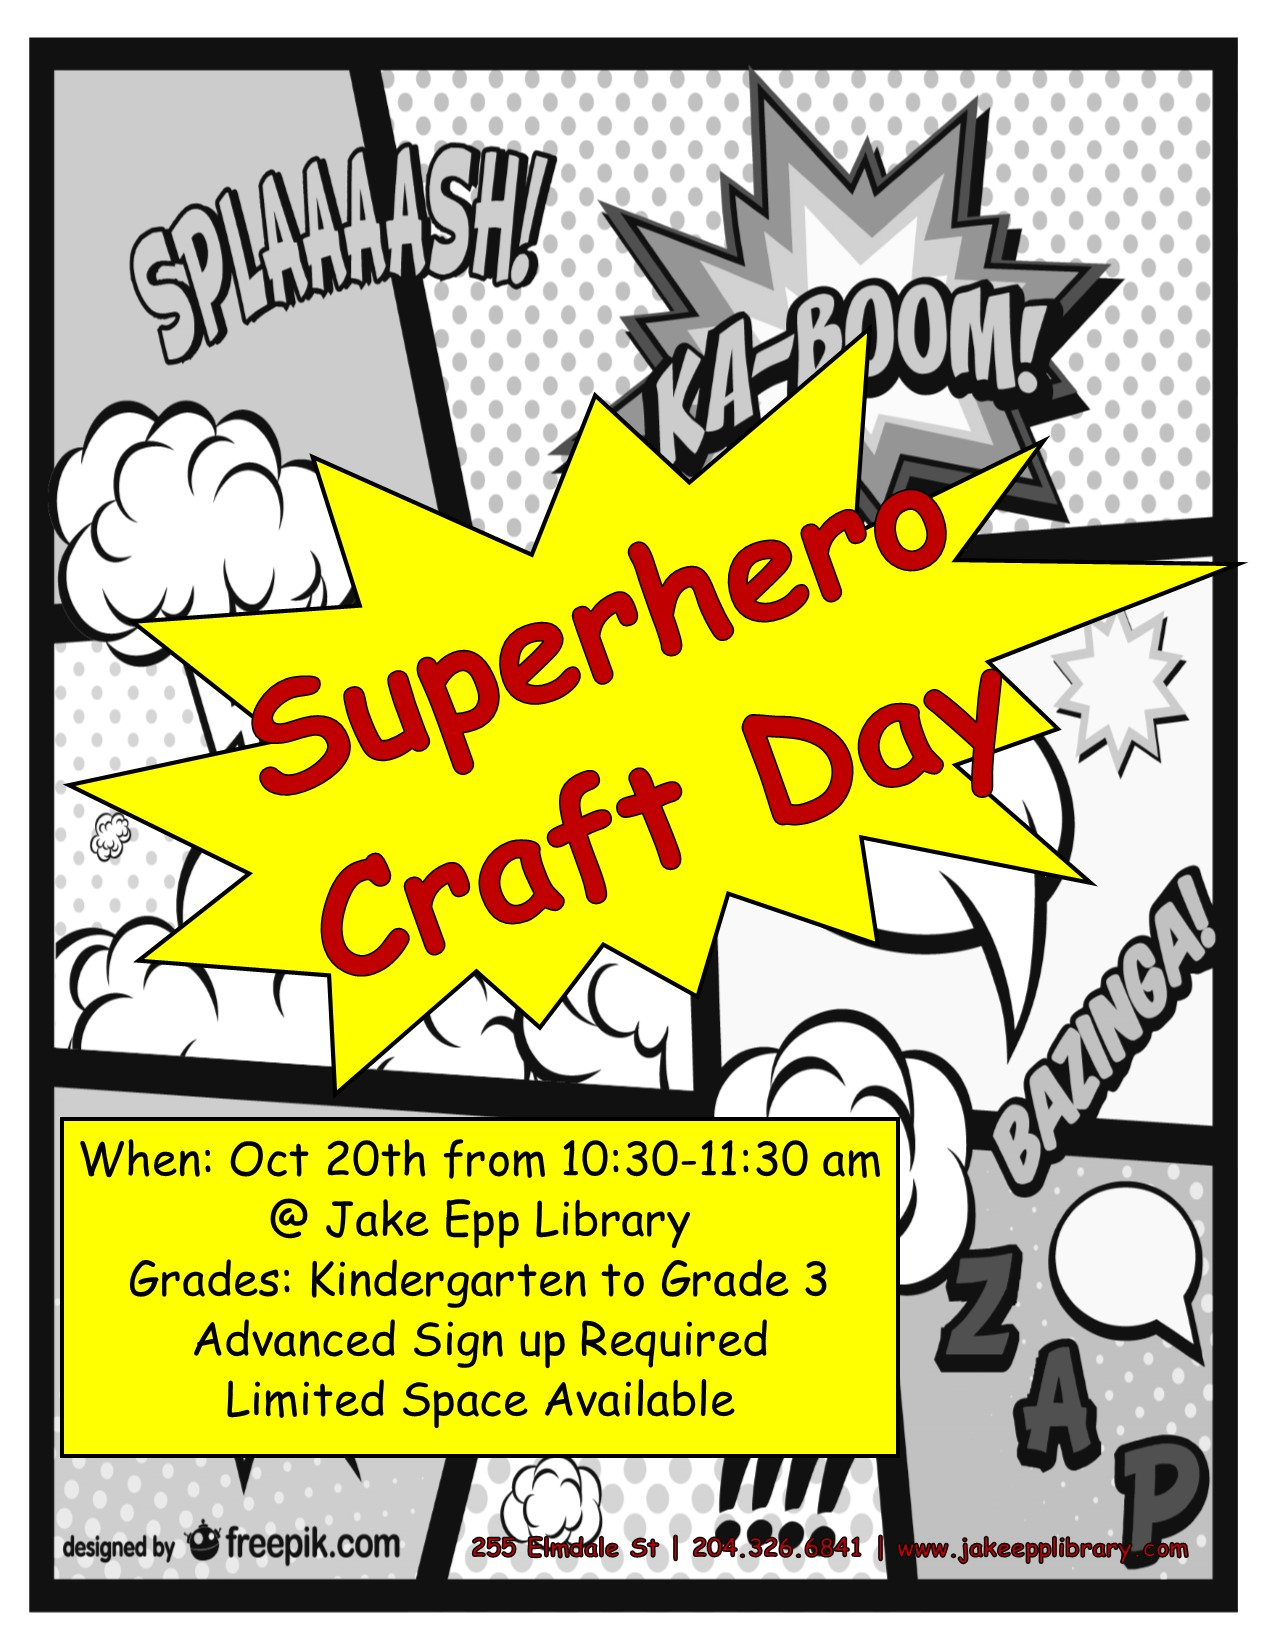 Superhero Craft Day Poster October 2017